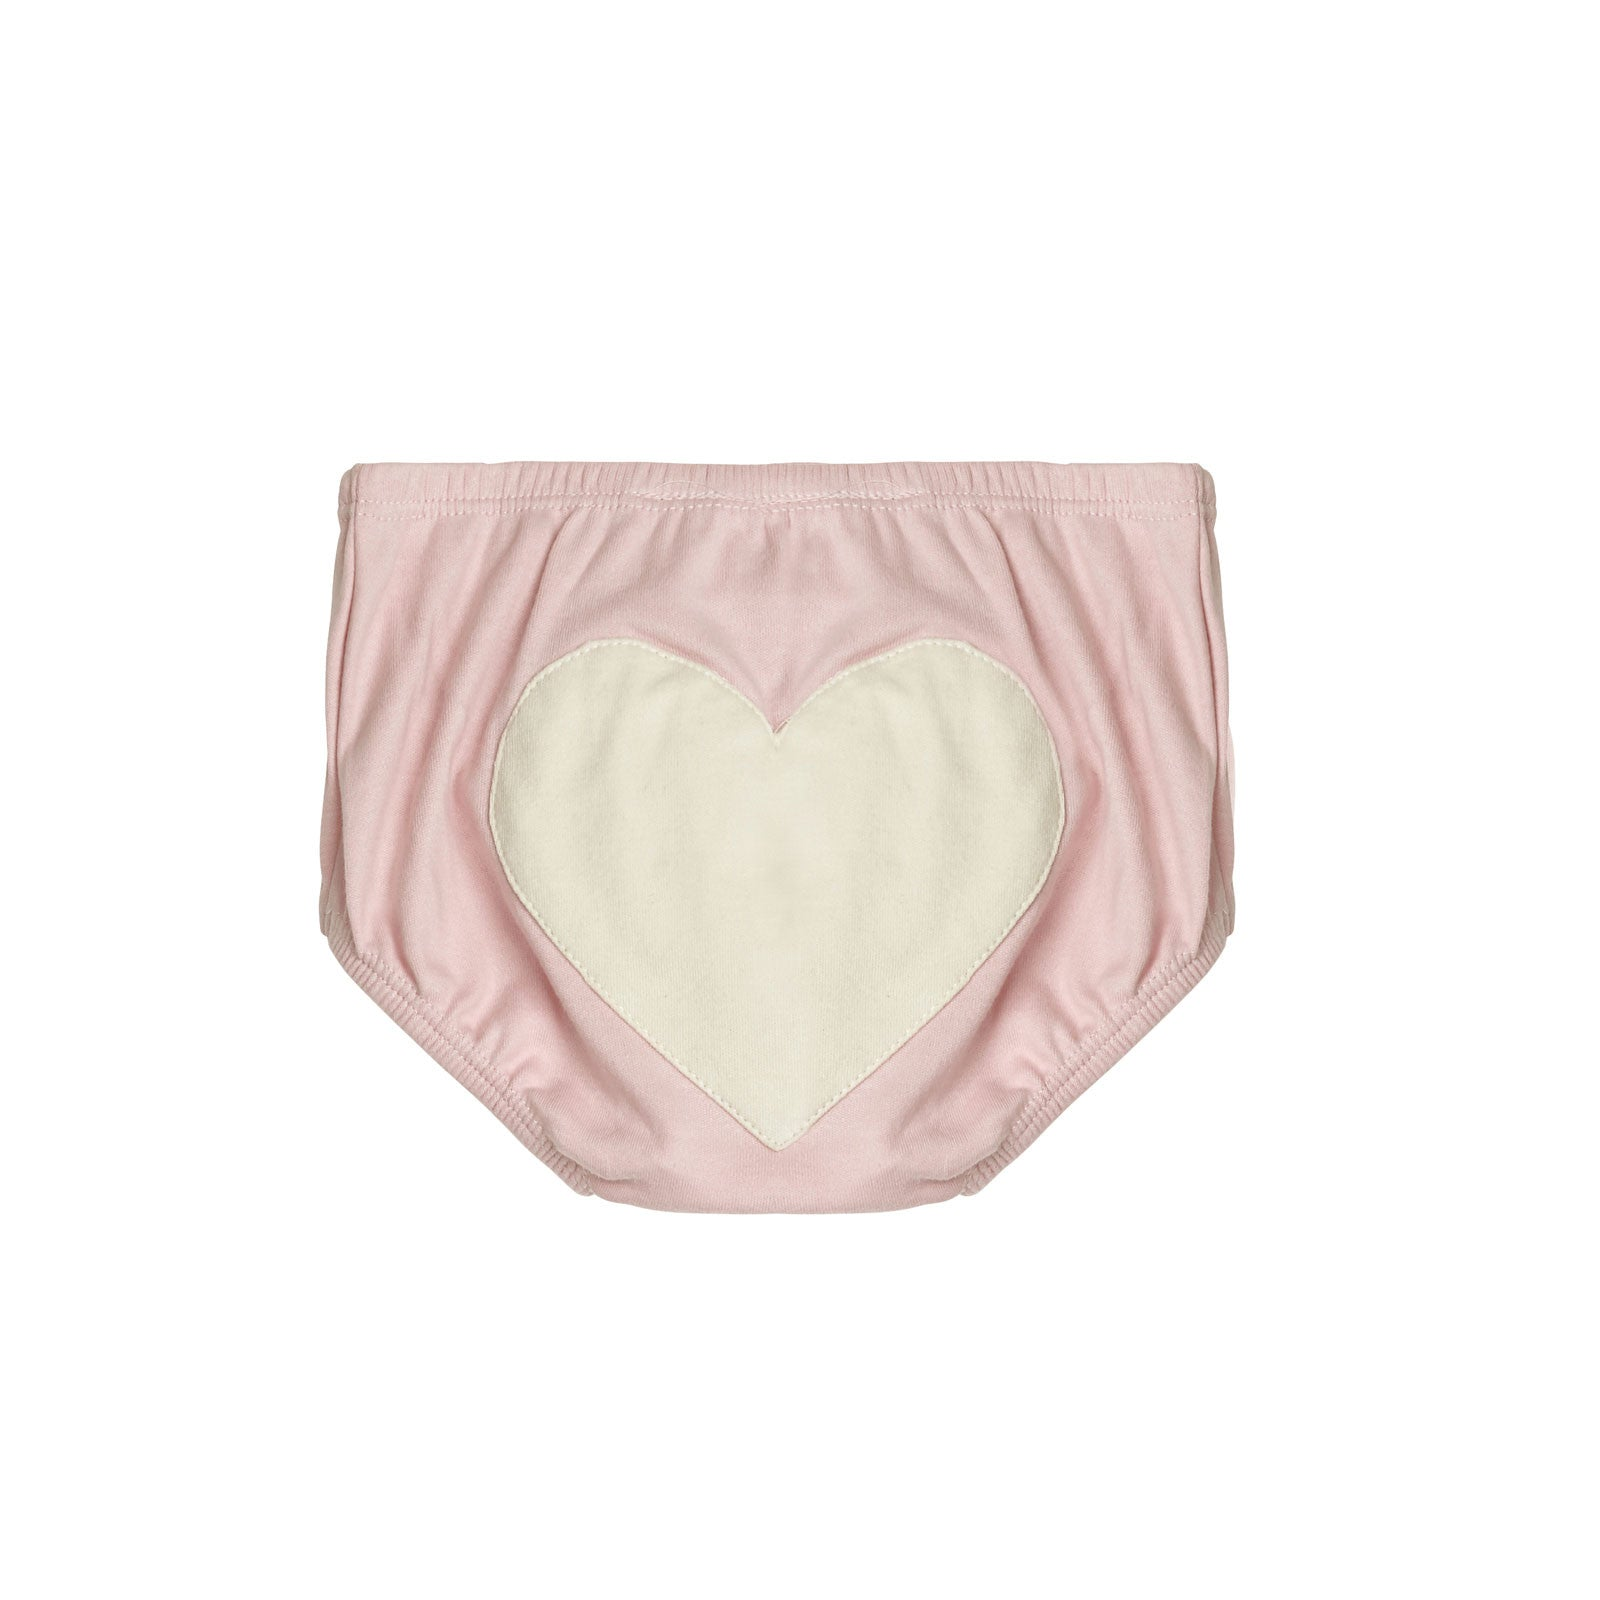 Sapling Child Essentials Heart Bloomers  0-3M / Dusty Pink - Sapling Child - Little Earth Nest - 4